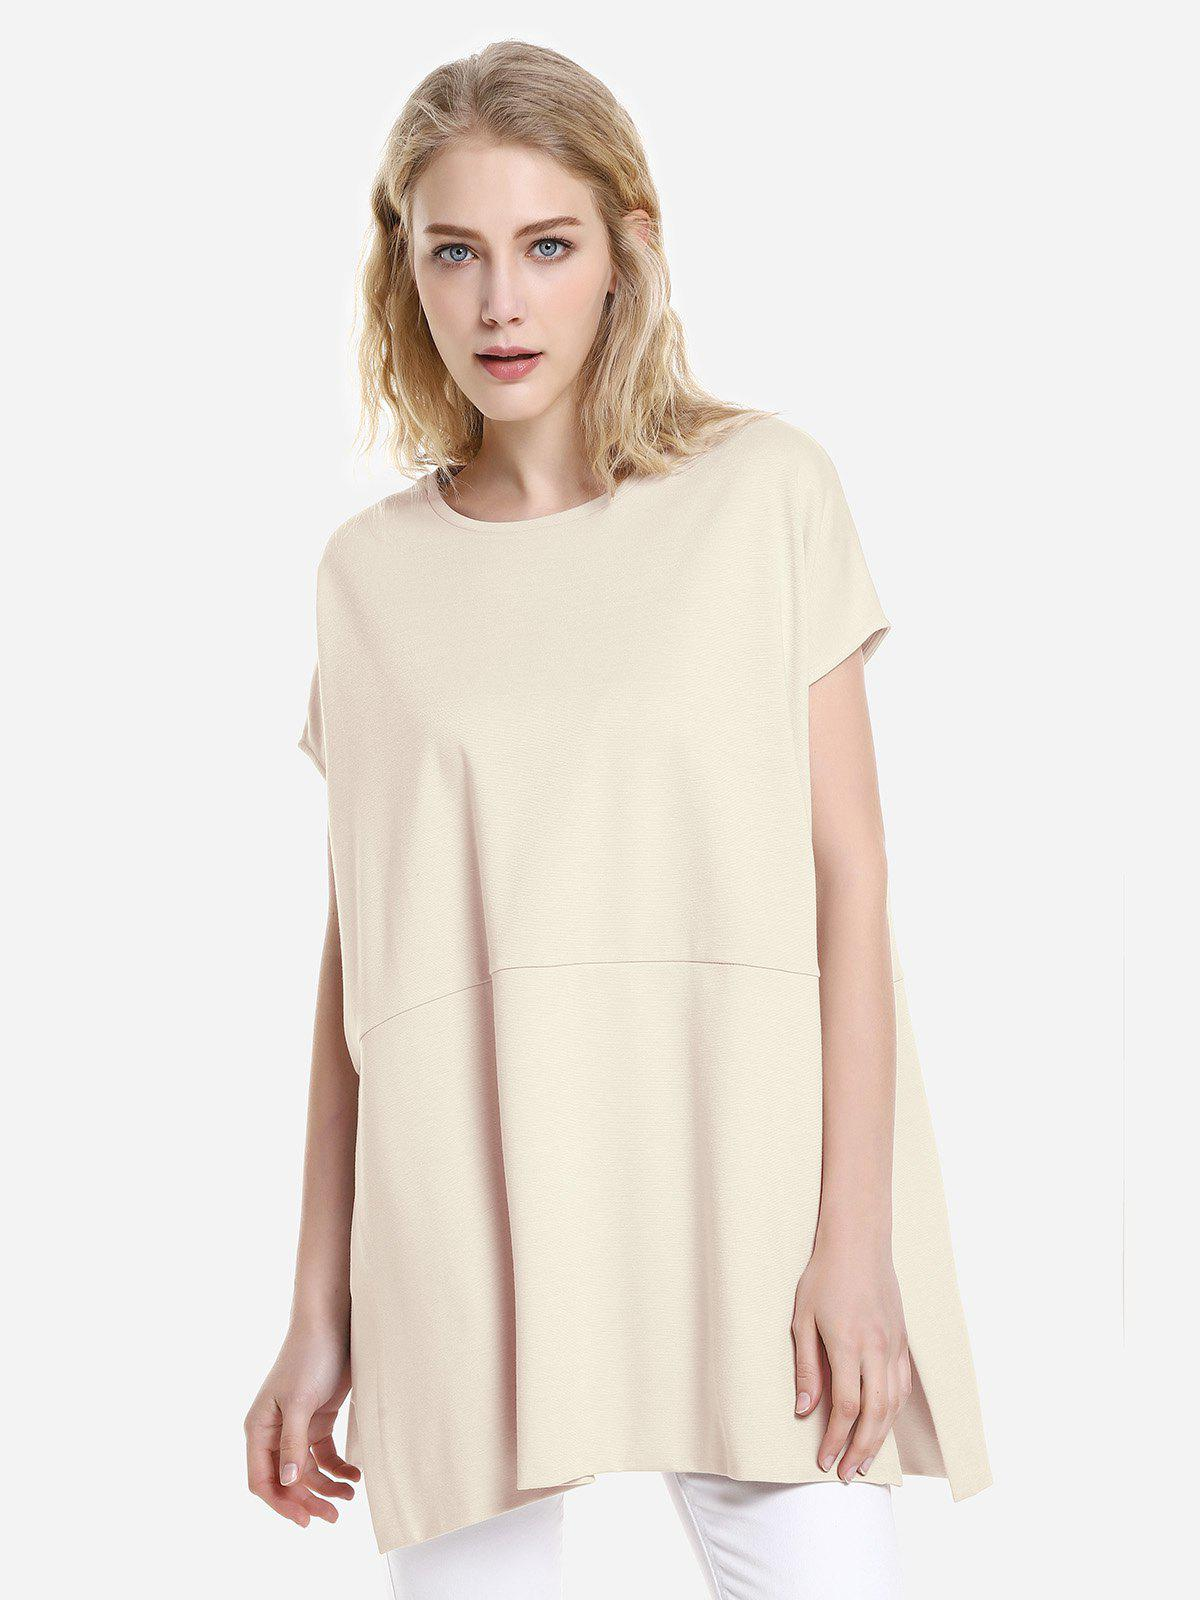 ZAN.STYLE Drop Shoulder Sleeve Top - APRICOT M